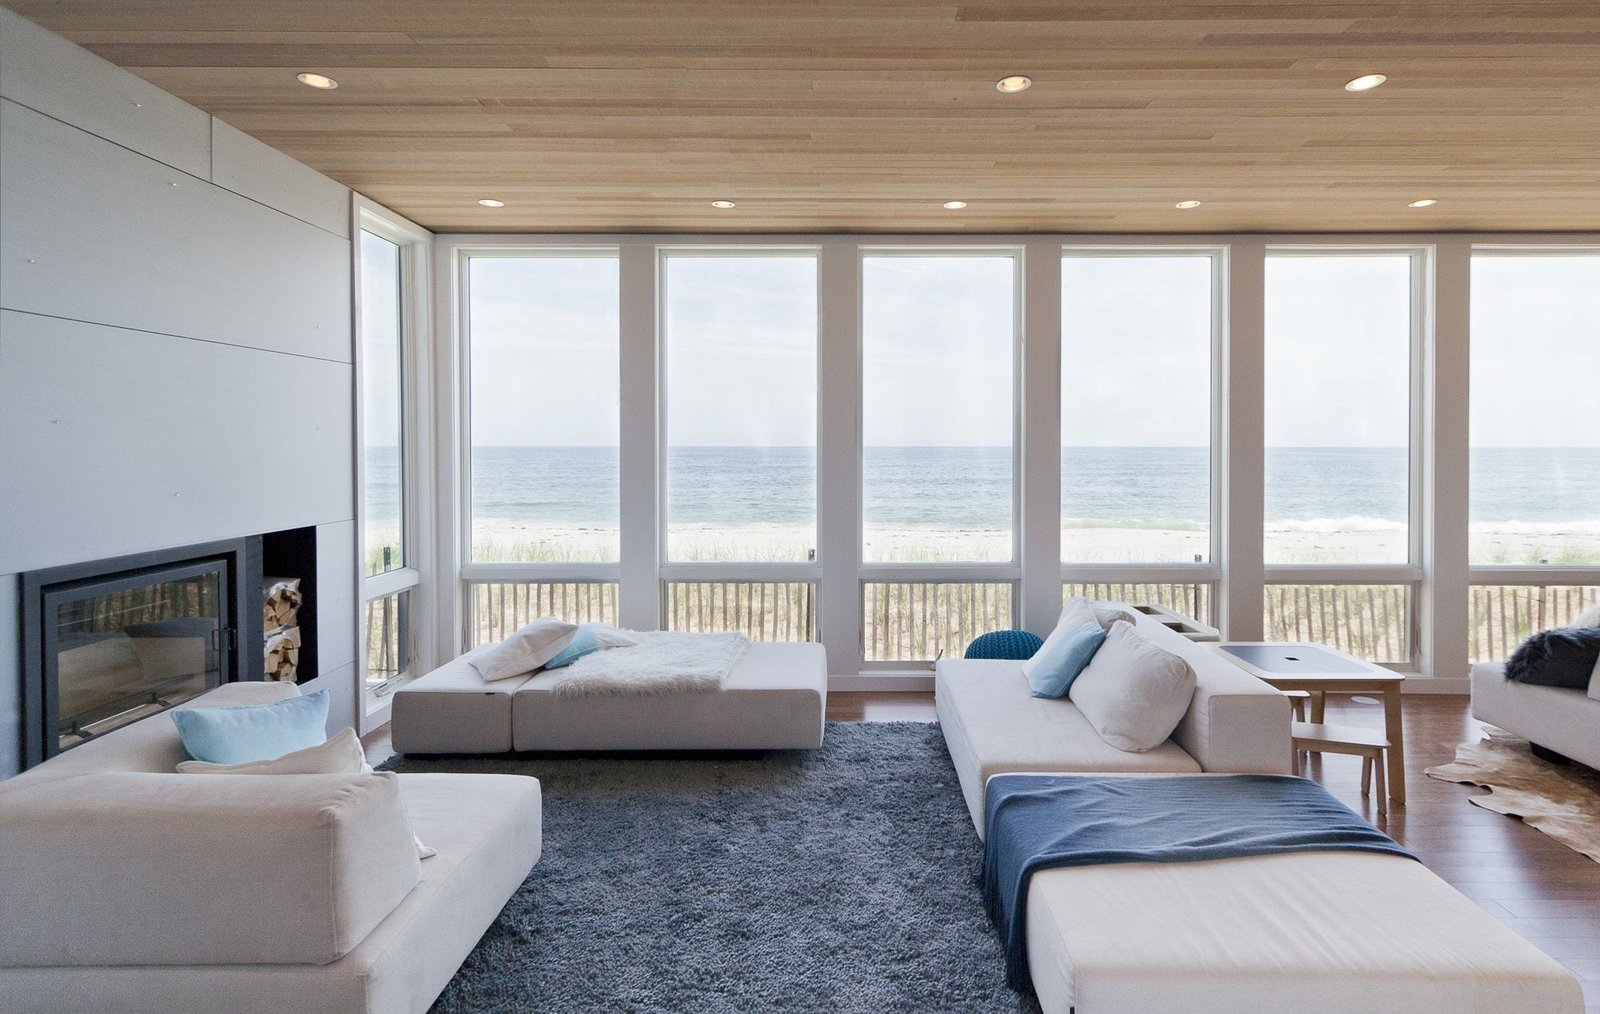 Medium Hardwood Floor, Wood Burning Fireplace, Ceiling Lighting, Sofa, and Living Room Living room and view of Atlantic Ocean upon entry  Dune Road Beach House by Resolution: 4 Architecture